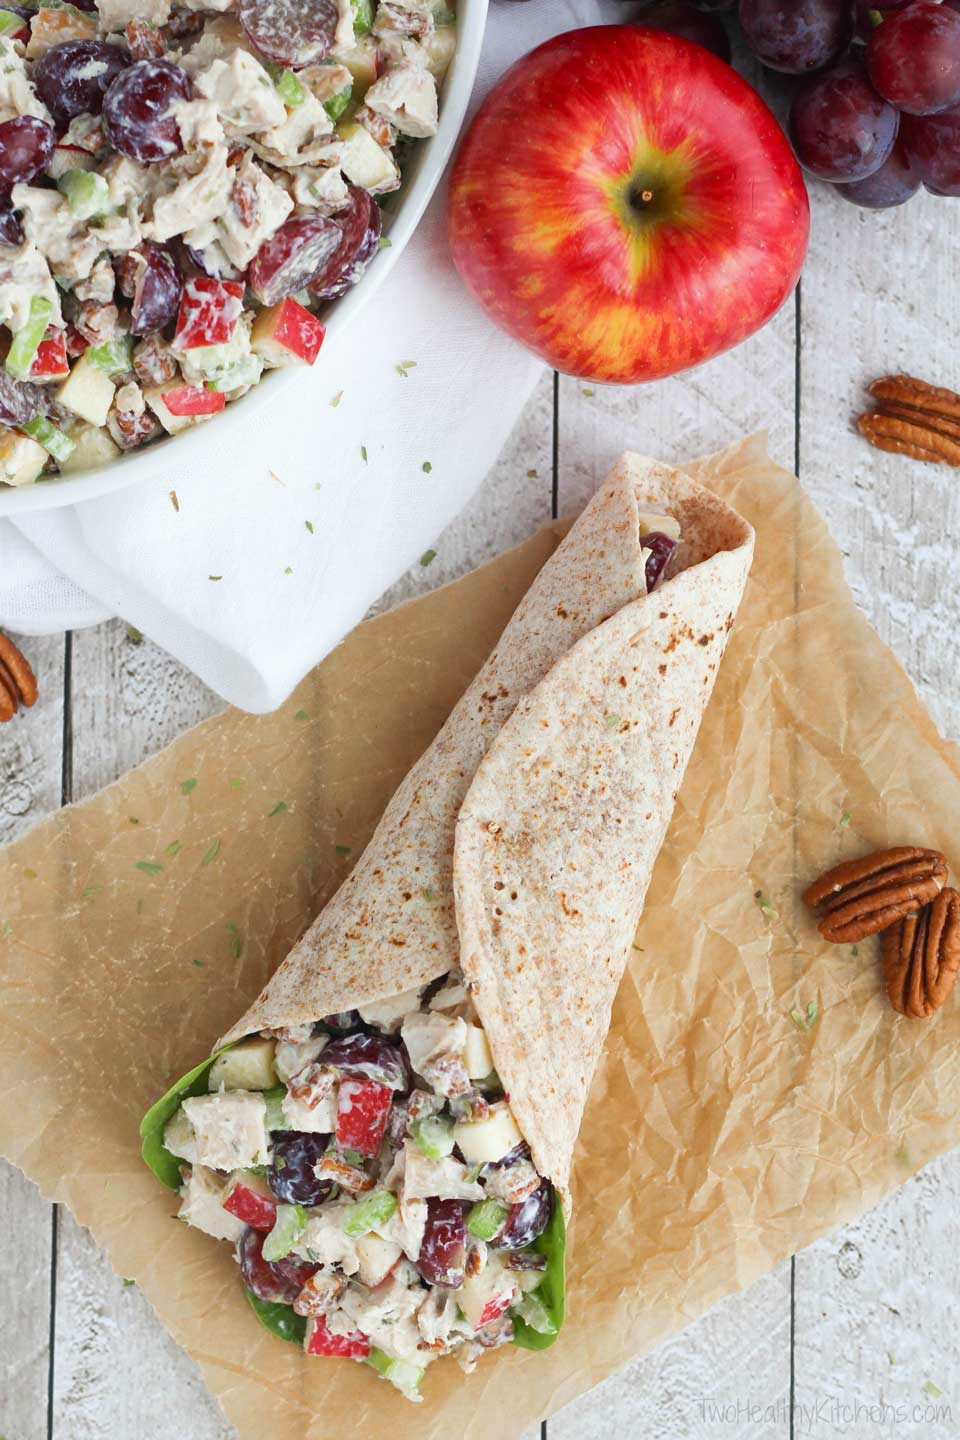 Healthy chicken salad sandwiches are always a hit, but we also love this recipe for chicken salad with grapes in a simple wrap – great for workday lunches!